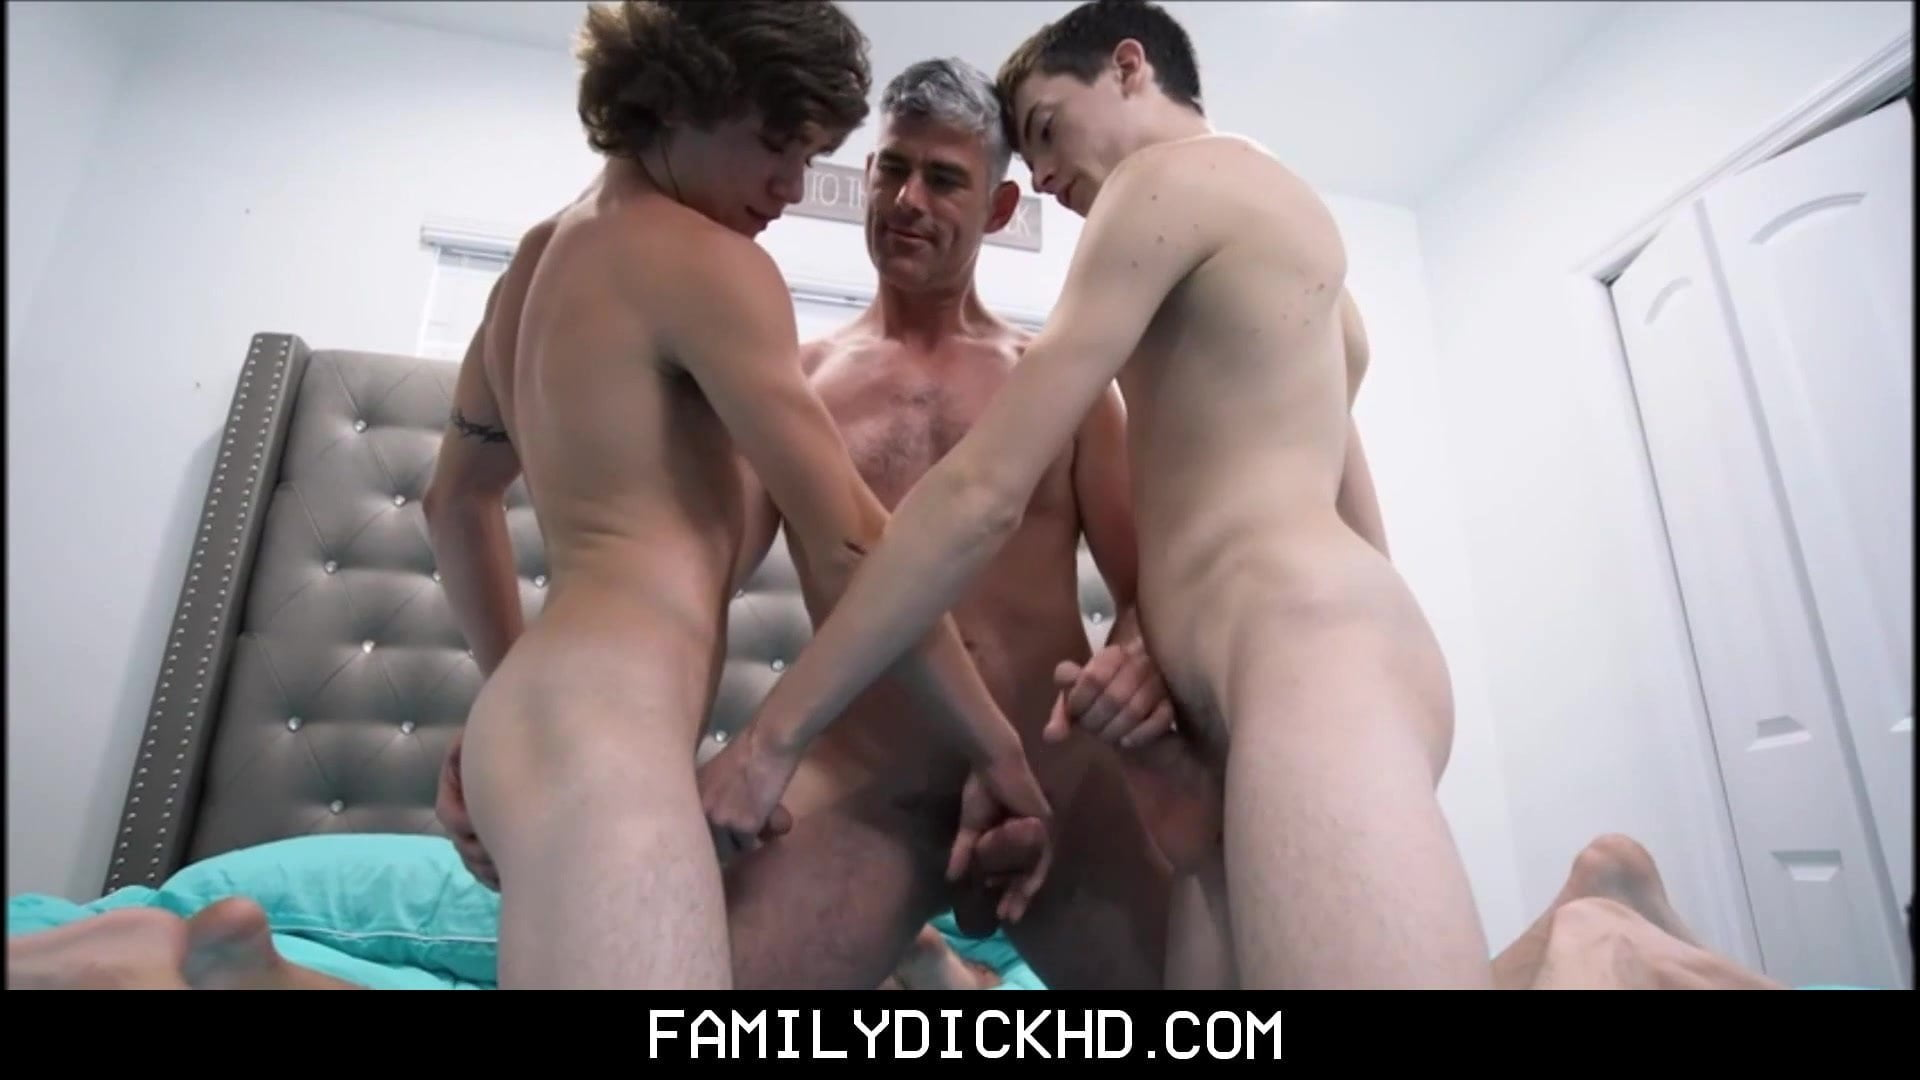 Stepdad And Twink Stepson Threesome With Younger Neighbor Boy